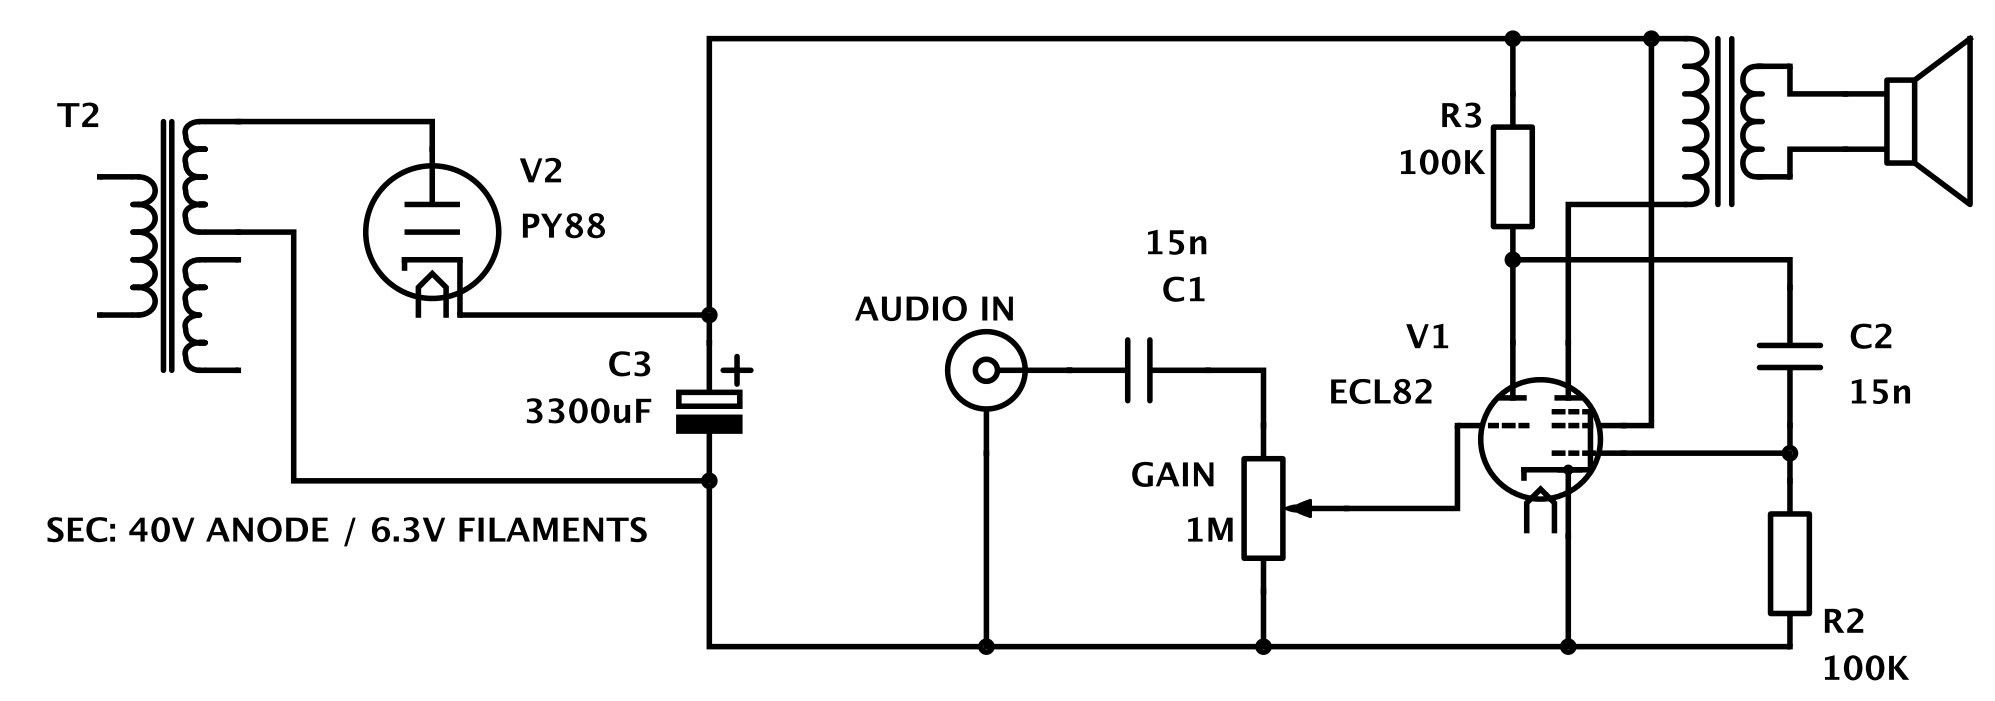 a nice little amplifier that is low voltage  non